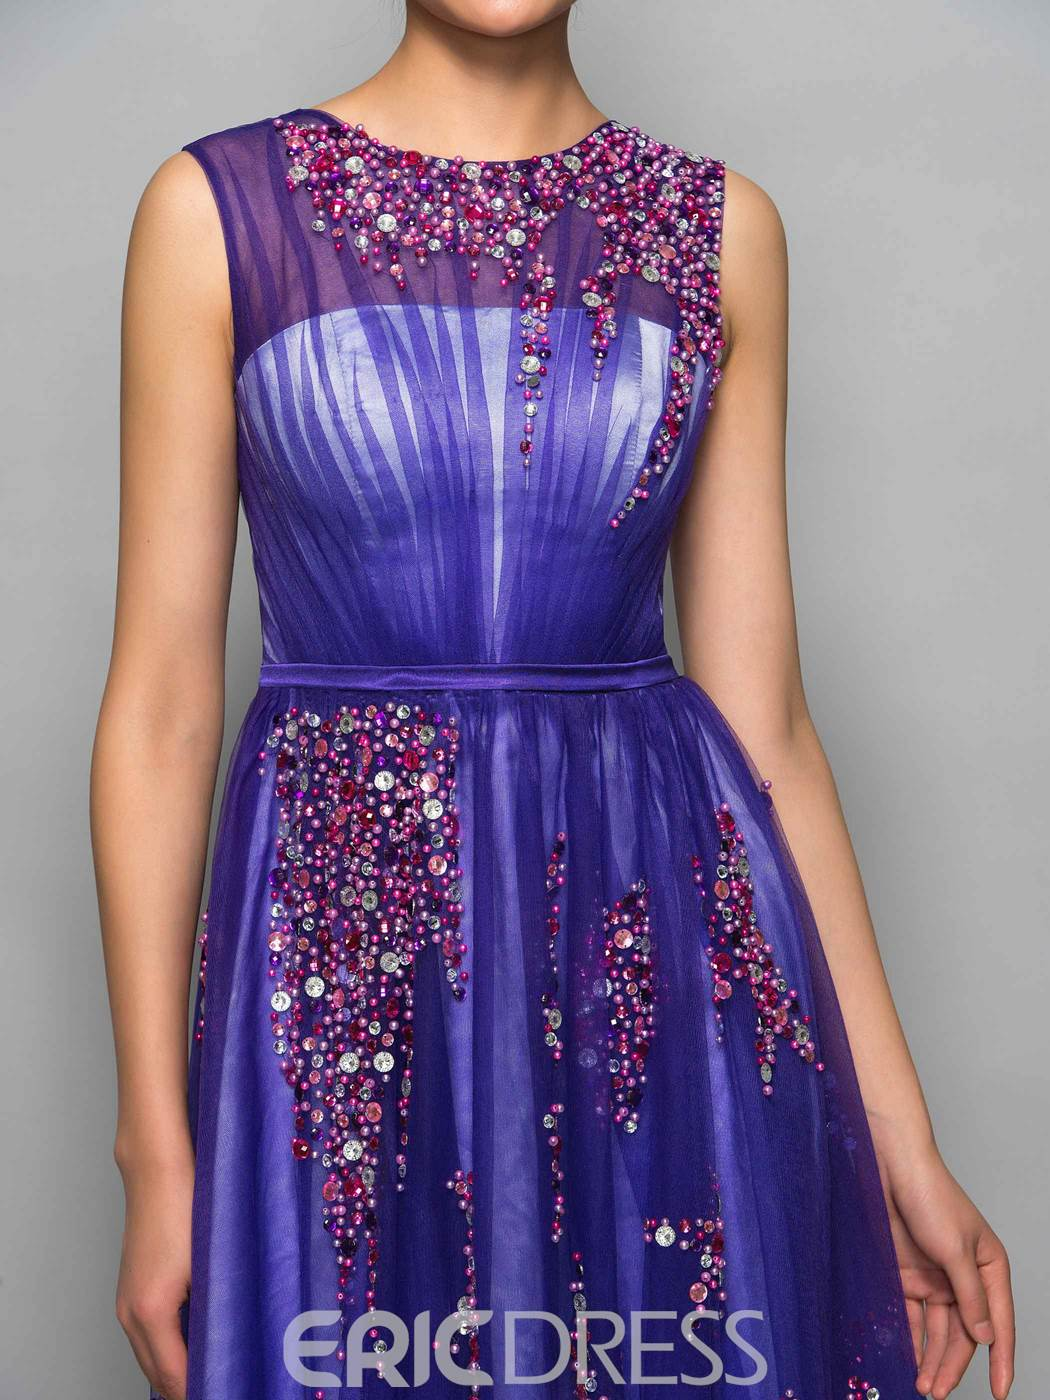 Ericdress A-Line Jewel Beading Crystal Pearls Knee-Length Cocktail Dress